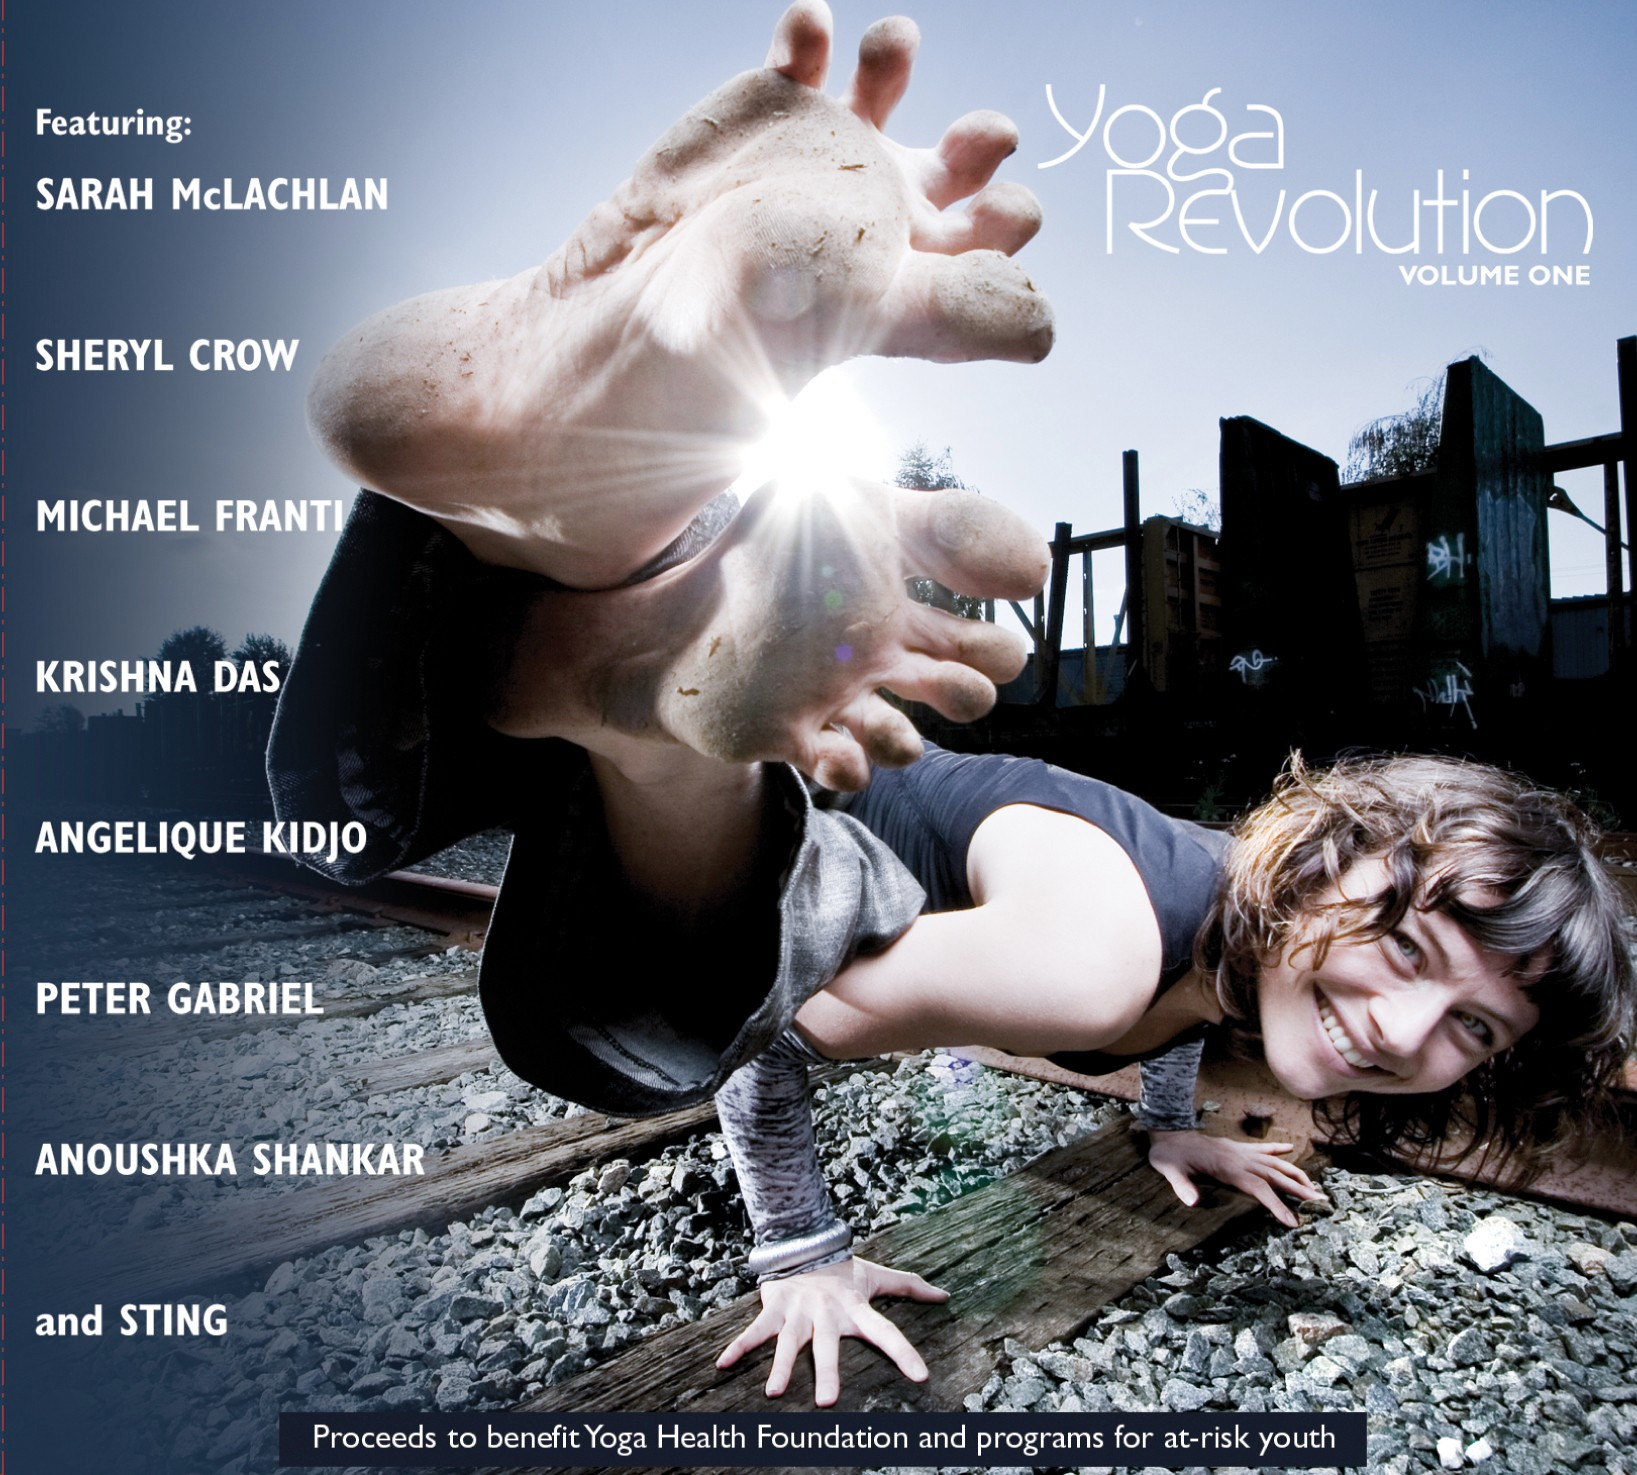 Yoga Revolution: Volume 1